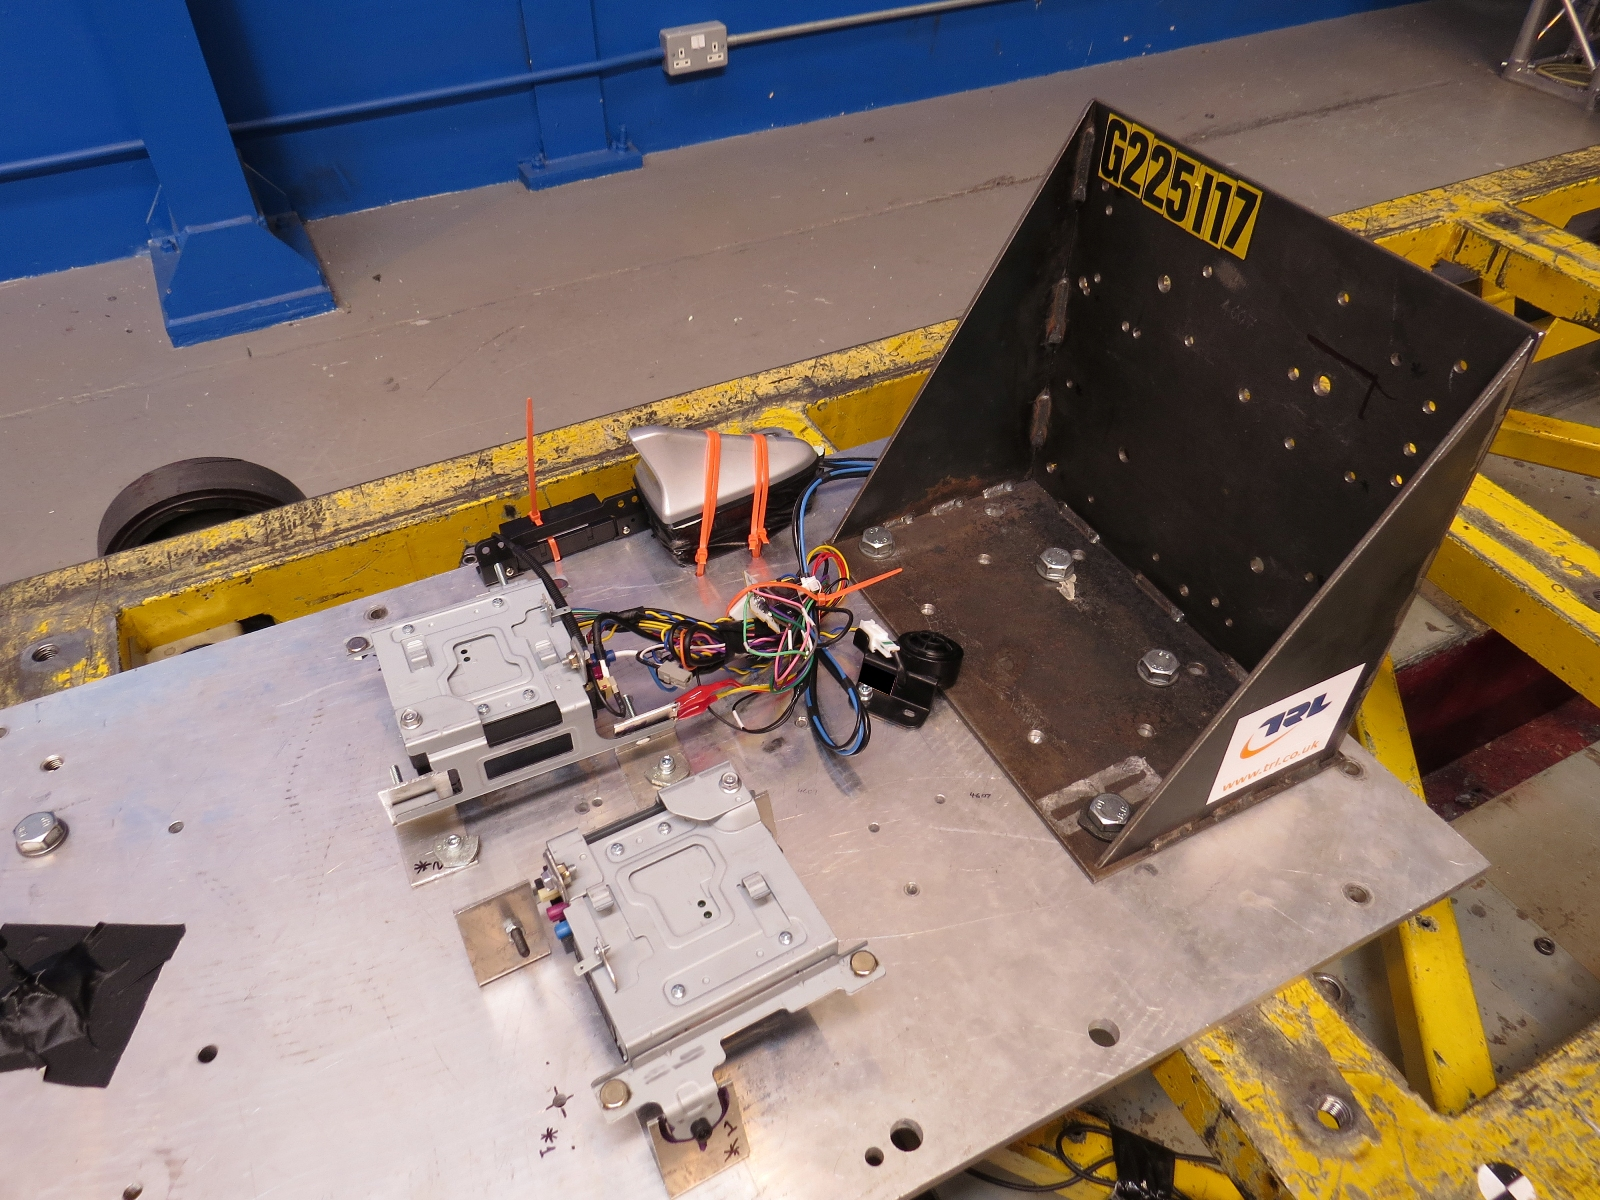 IVU in position for sled testing